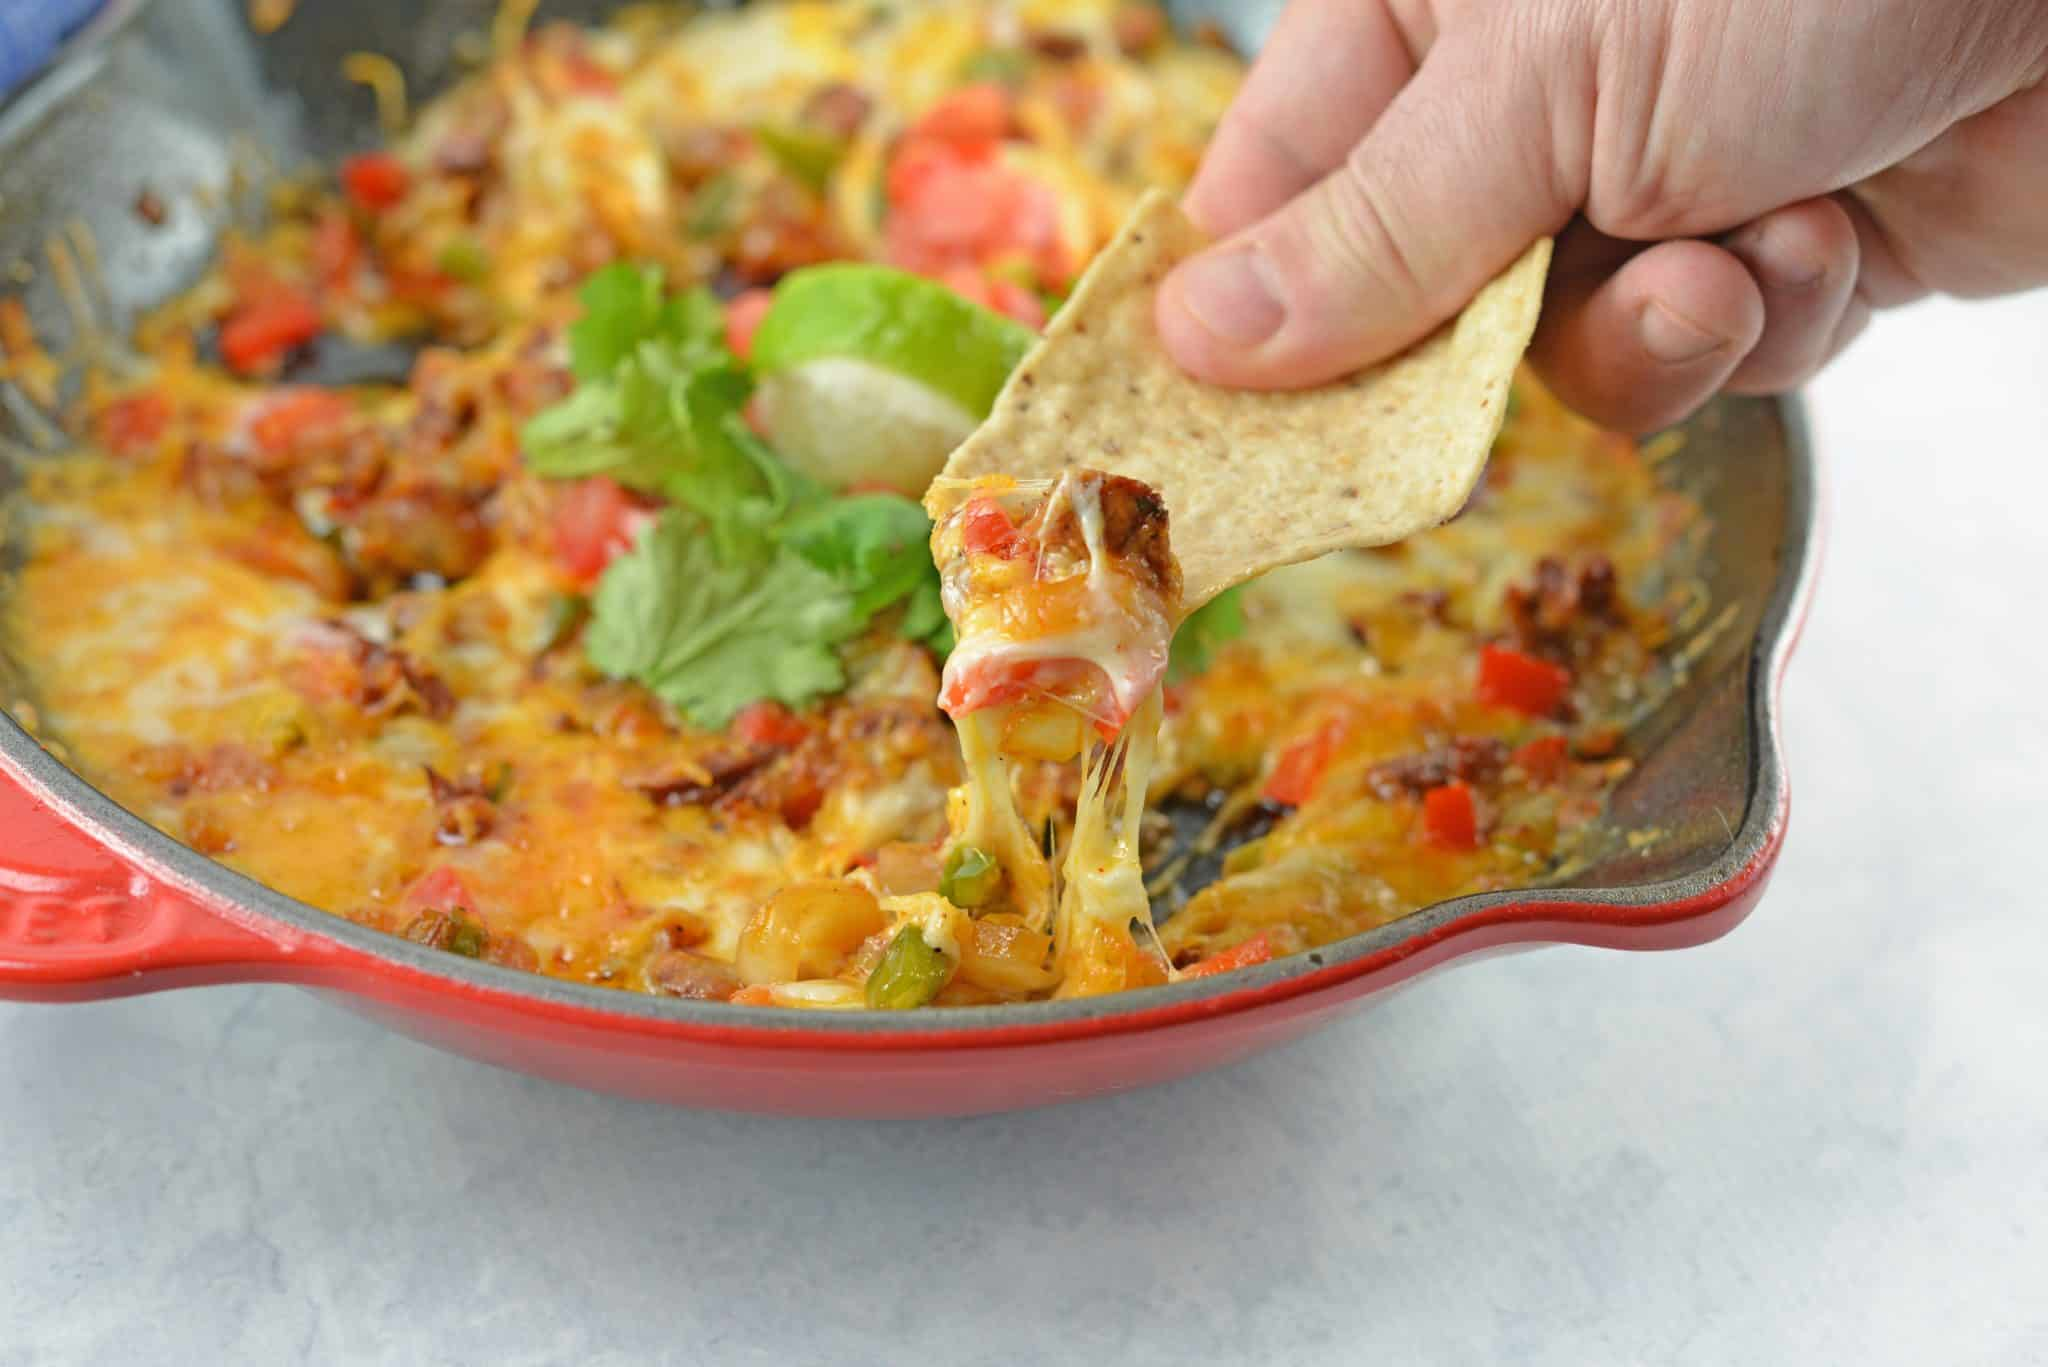 Queso Fundido with Chorizo is the best Mexican Cheese Dip made with a blend of Mexican cheeses, smoky, spicy Chorizo and fresh vegetables. #quesofundido #cheesedip www.savoryexperiments.com